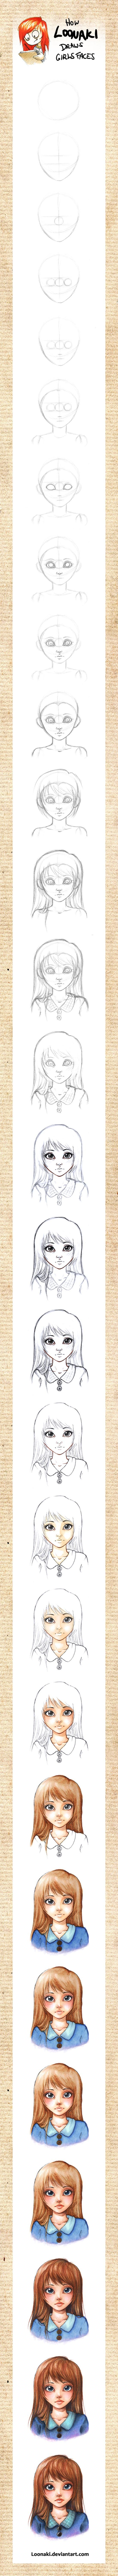 How Loonaki Draws Girls Faces by *Loonaki on deviantART